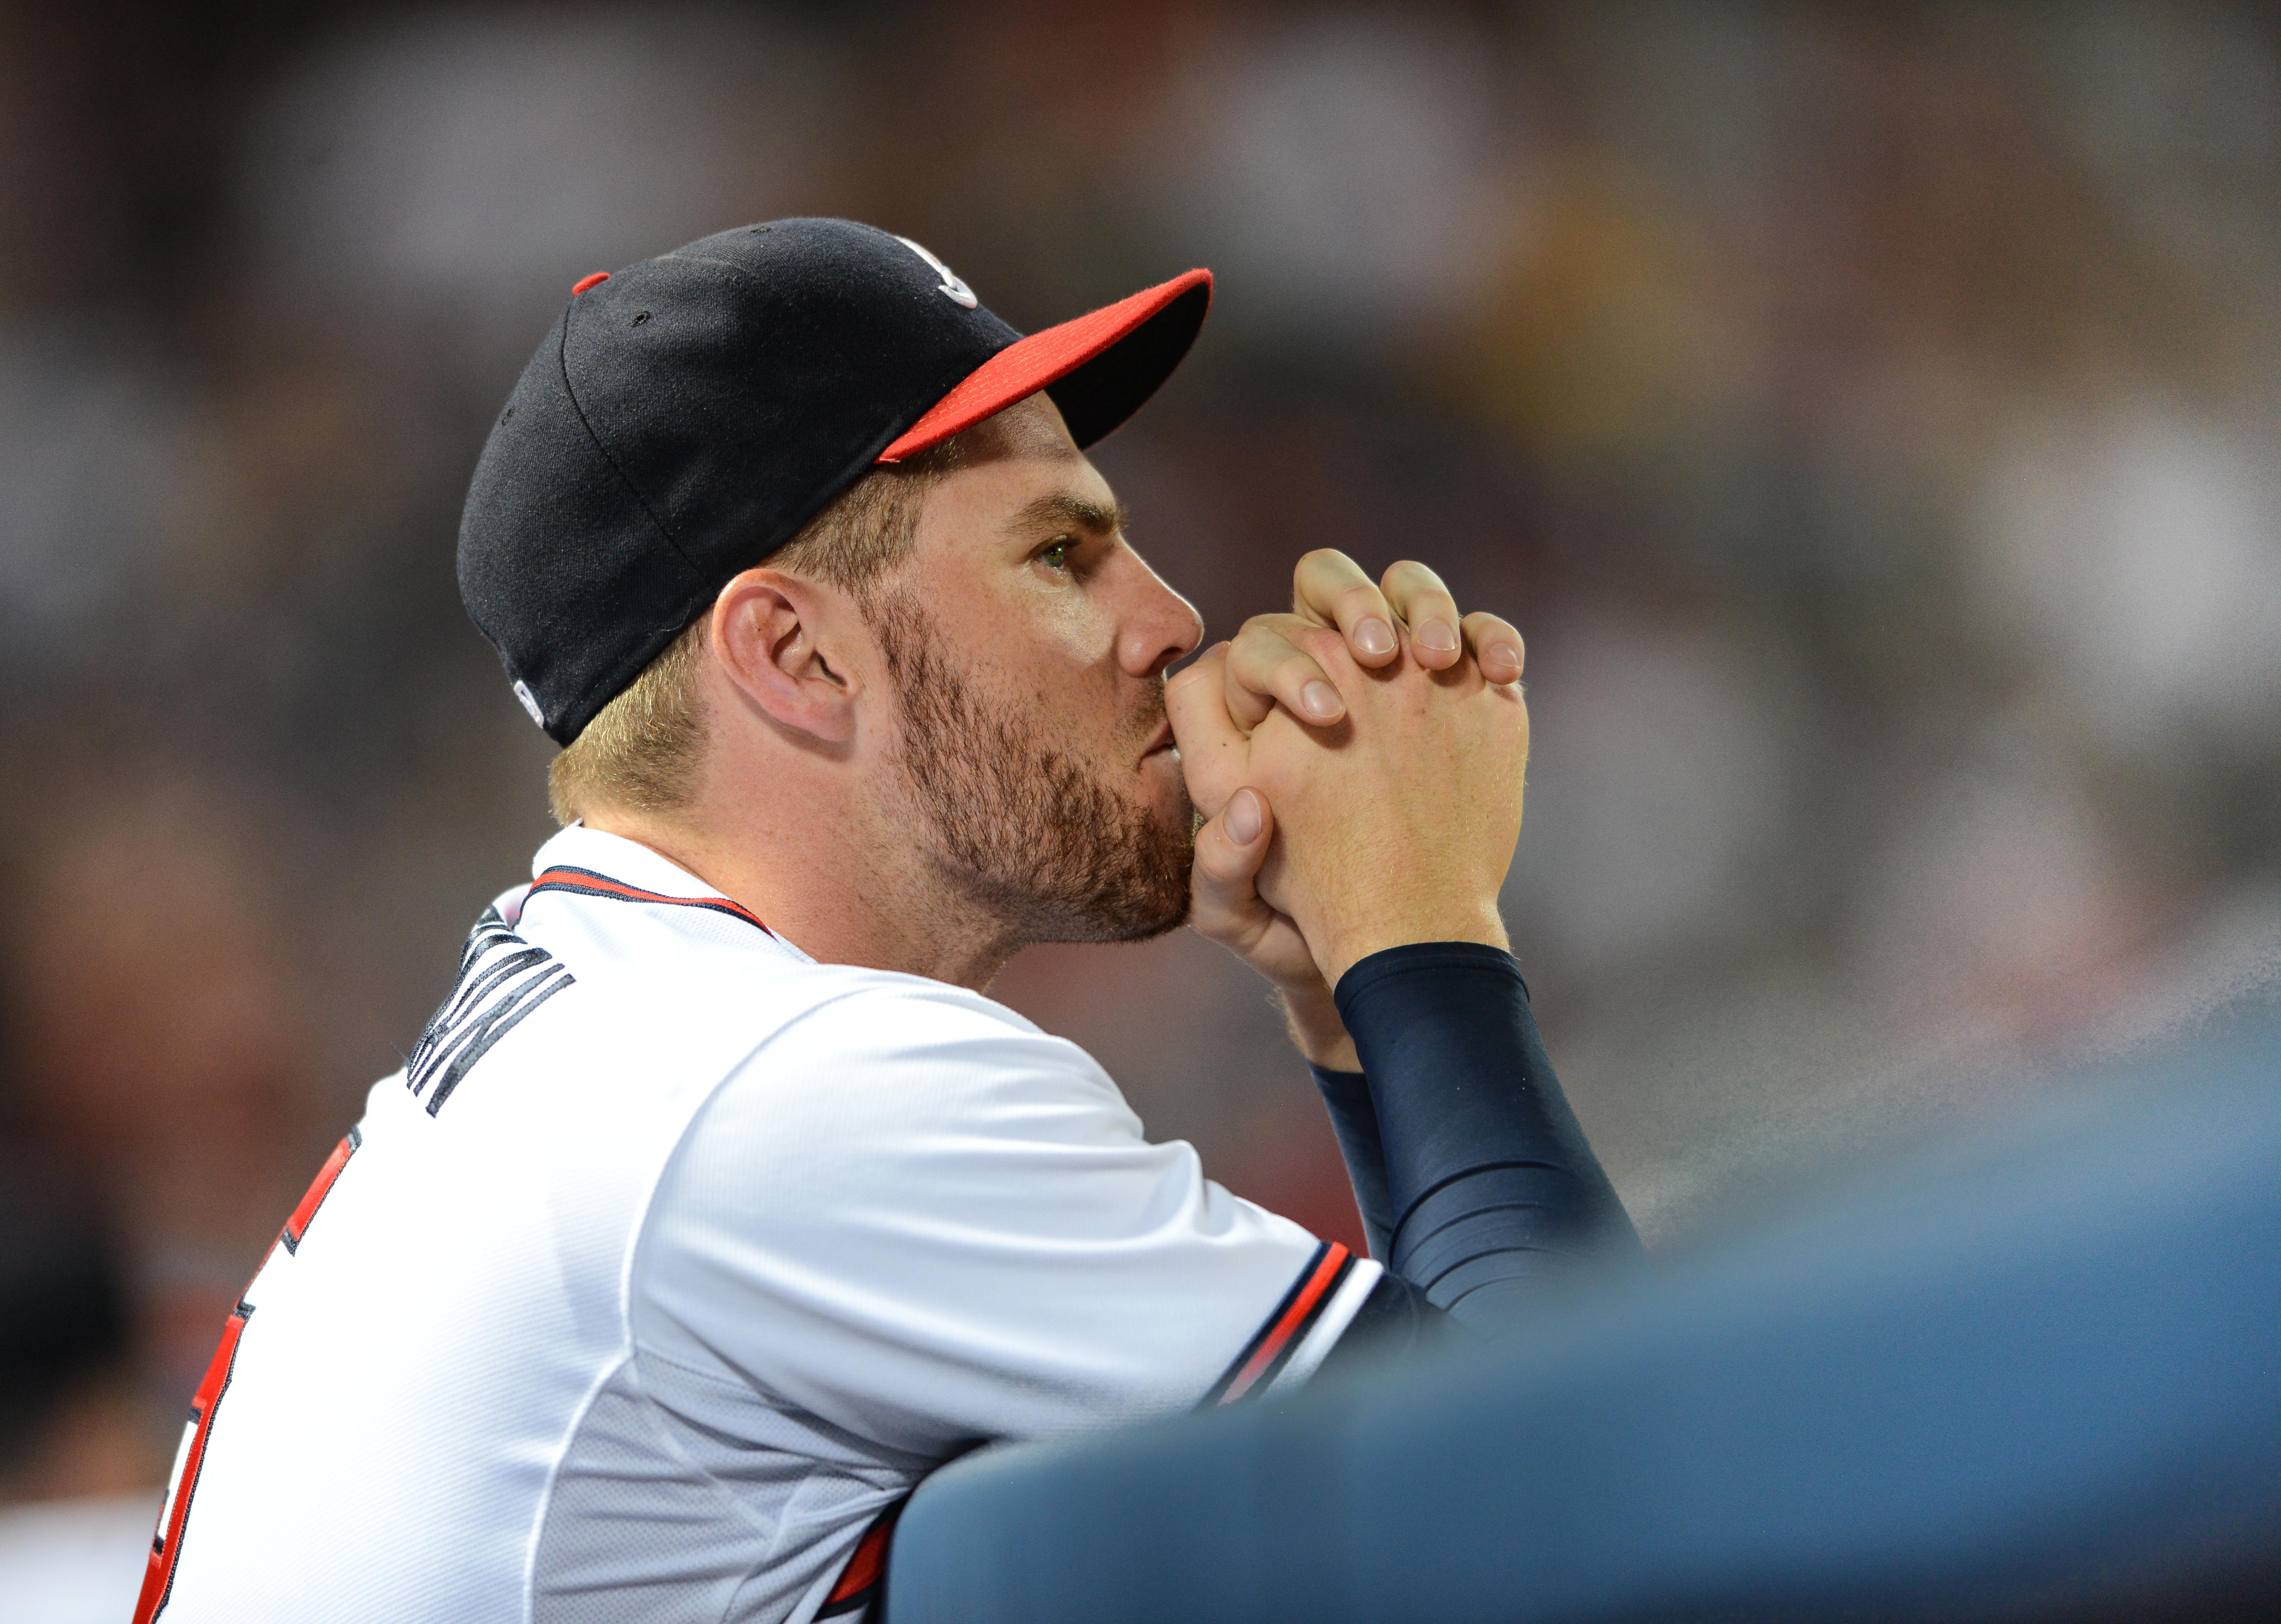 Atlanta Braves first baseman Freddie Freeman looks on from the dugout during a baseball game against the Boston Red Sox Thursday, June 18, 2015, in Atlanta.  Freeman sat out for the first time in three seasons, ending his consecutive games playing streak